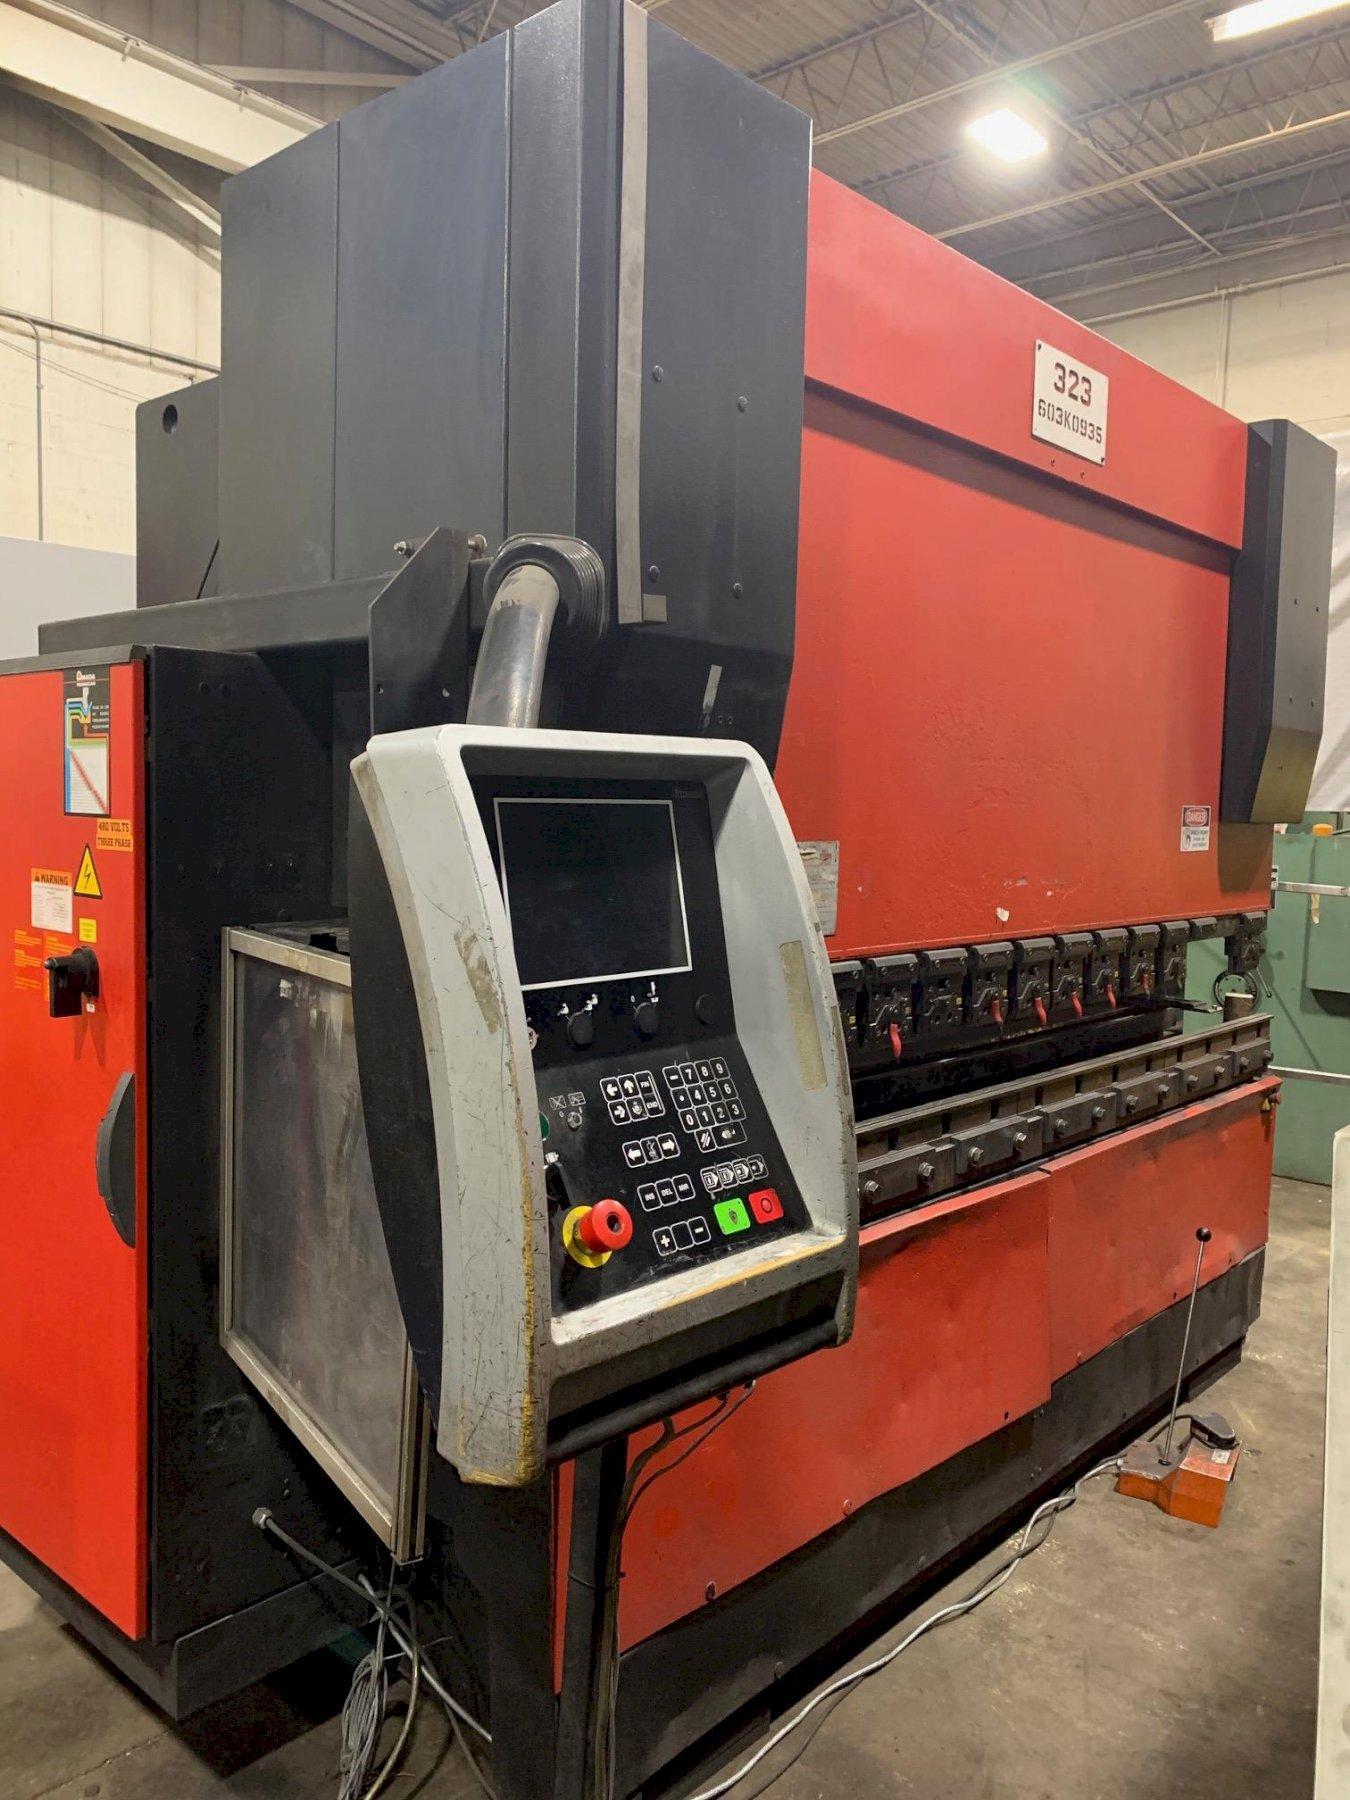 USED AMADA 143 TON X 10' MODEL HFE 1303 6-AXIS HYDRAULIC DOWNACTING CNC PRESS BRAKE, Stock# 10731, Year 2003